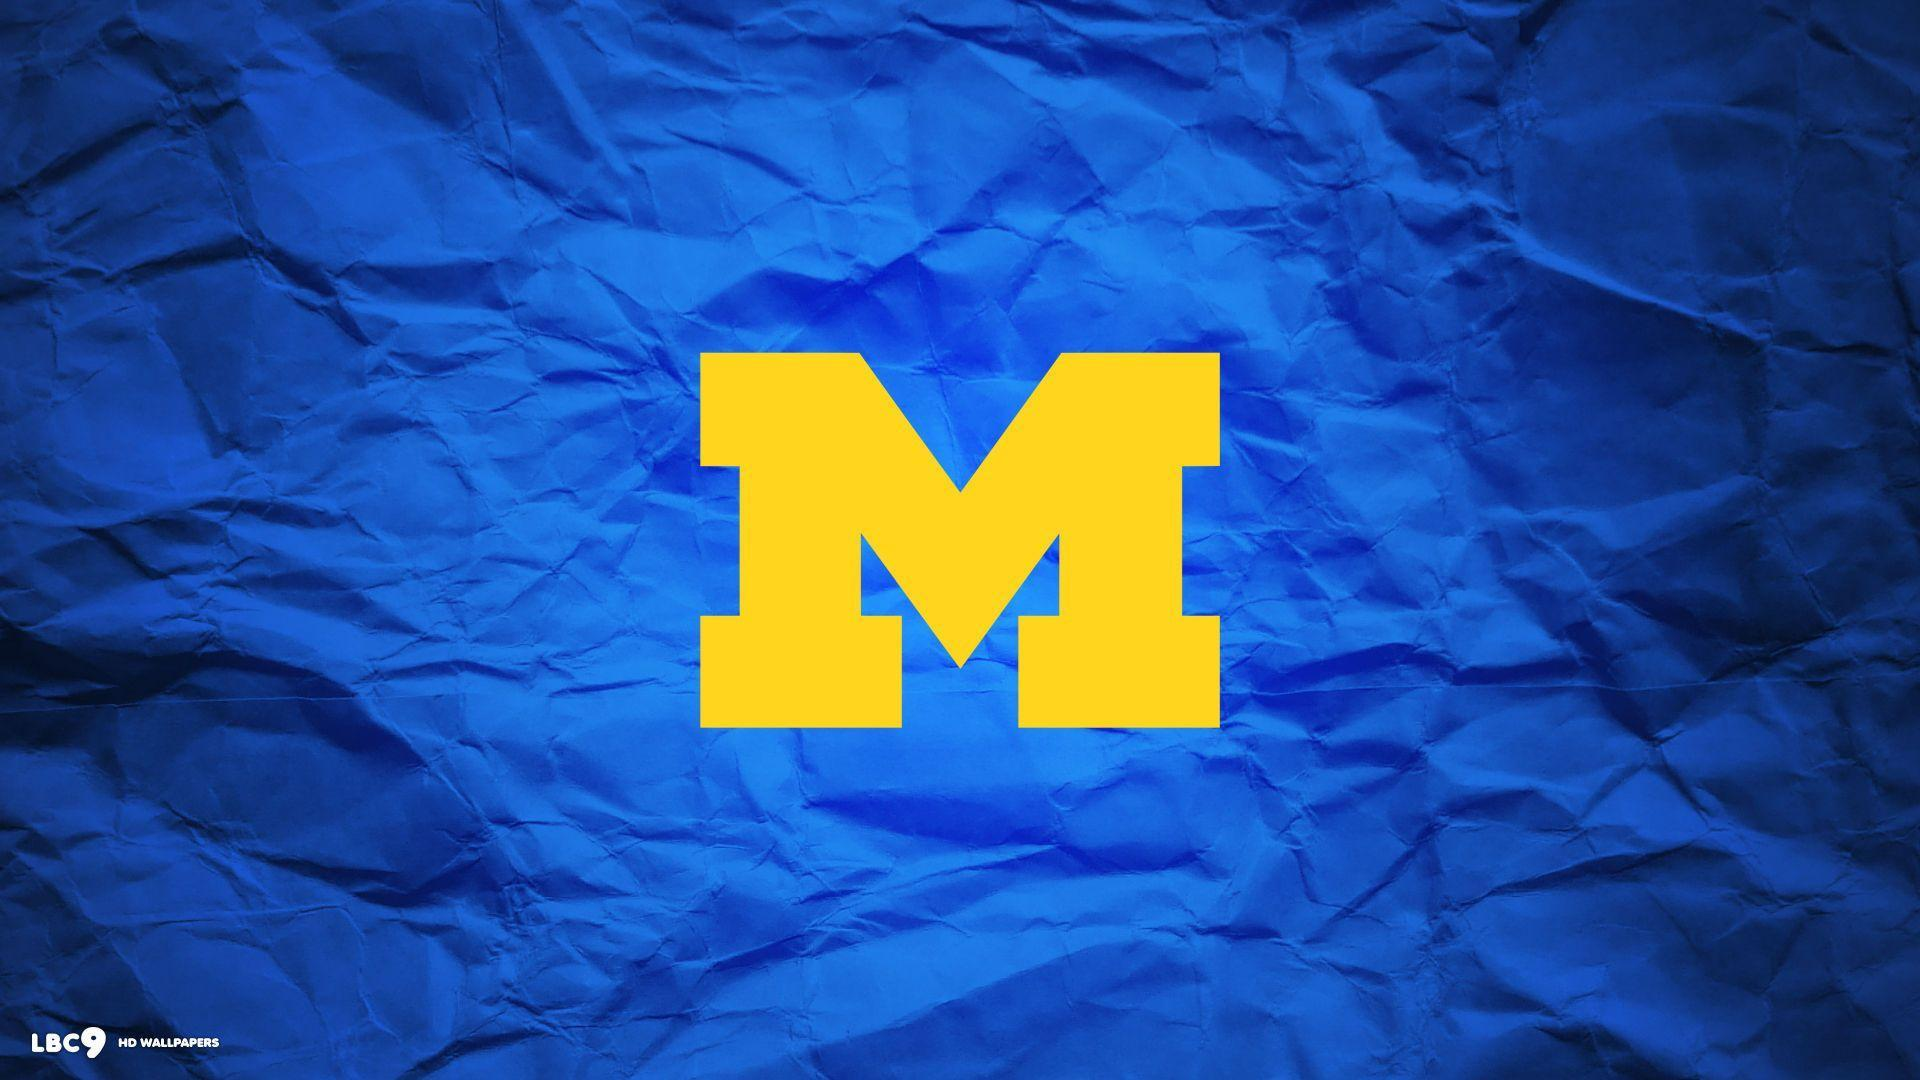 Michigan State University Wallpapers: Michigan Wolverines Wallpapers